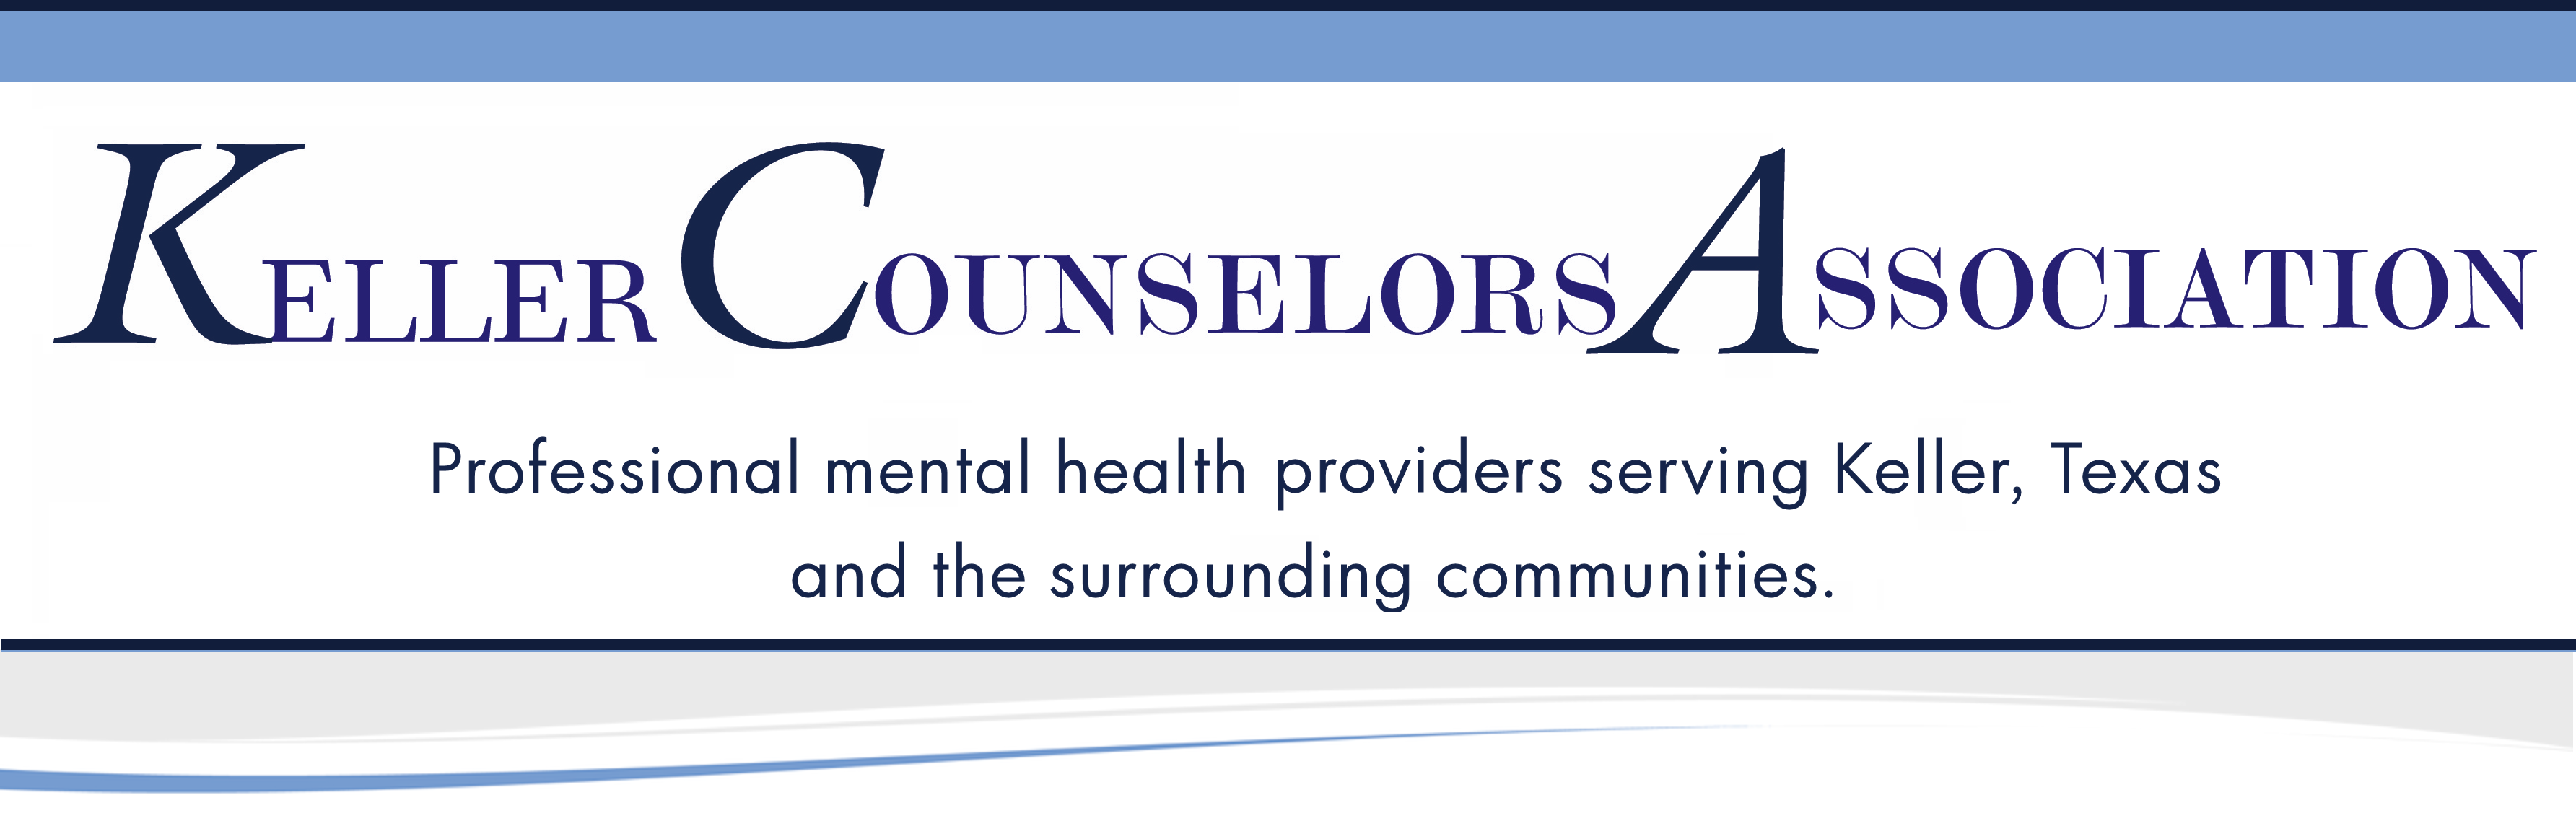 Keller Counselors Association